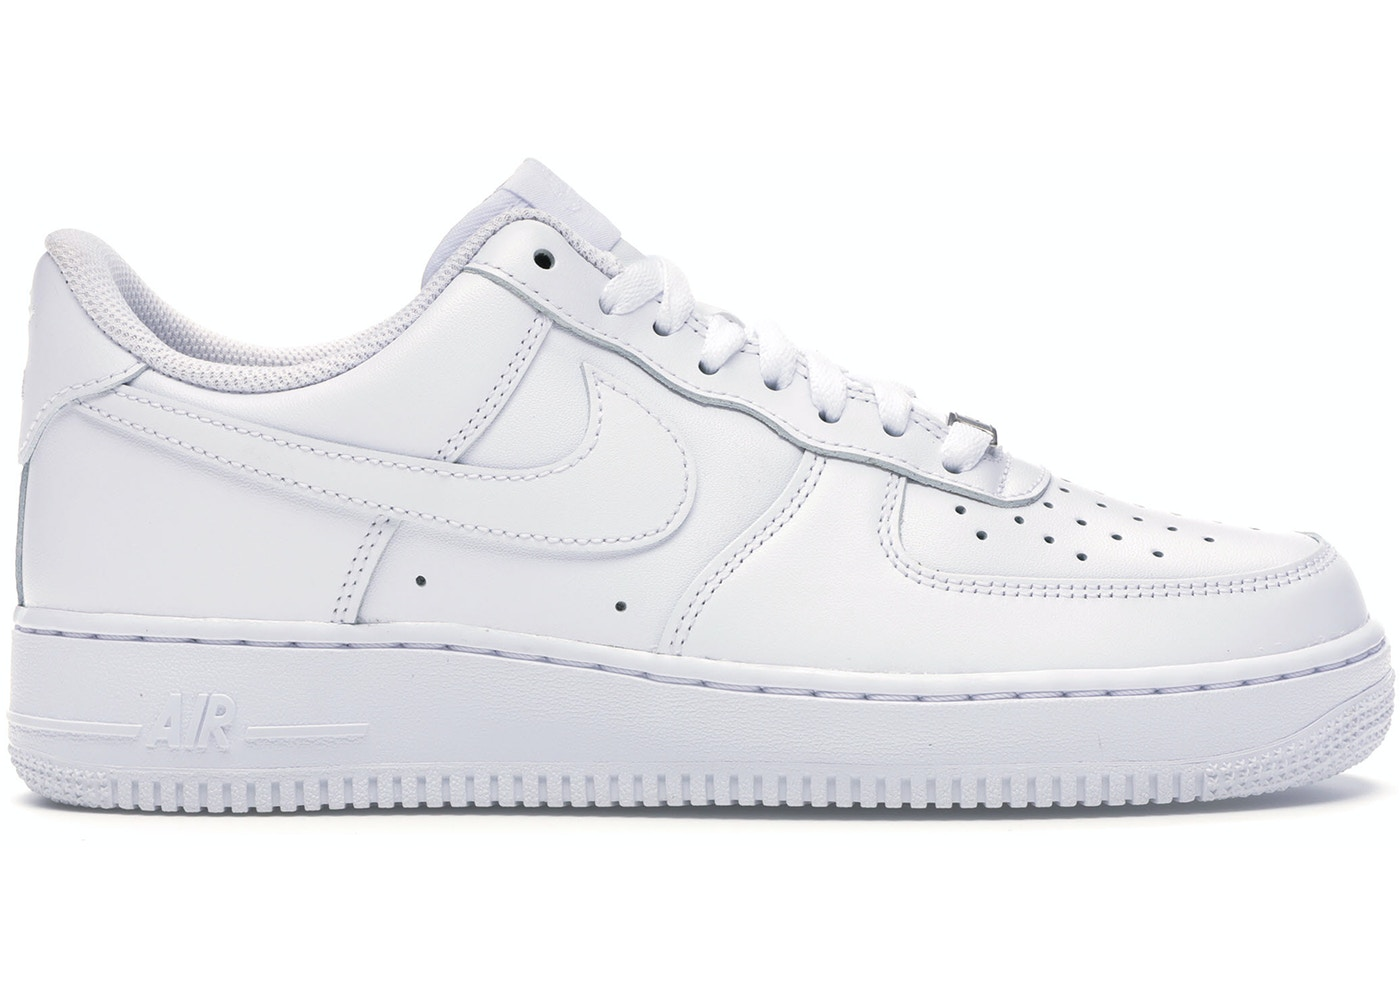 competitive price cheap price shop Buy Nike Air Force 1 Shoes & Deadstock Sneakers